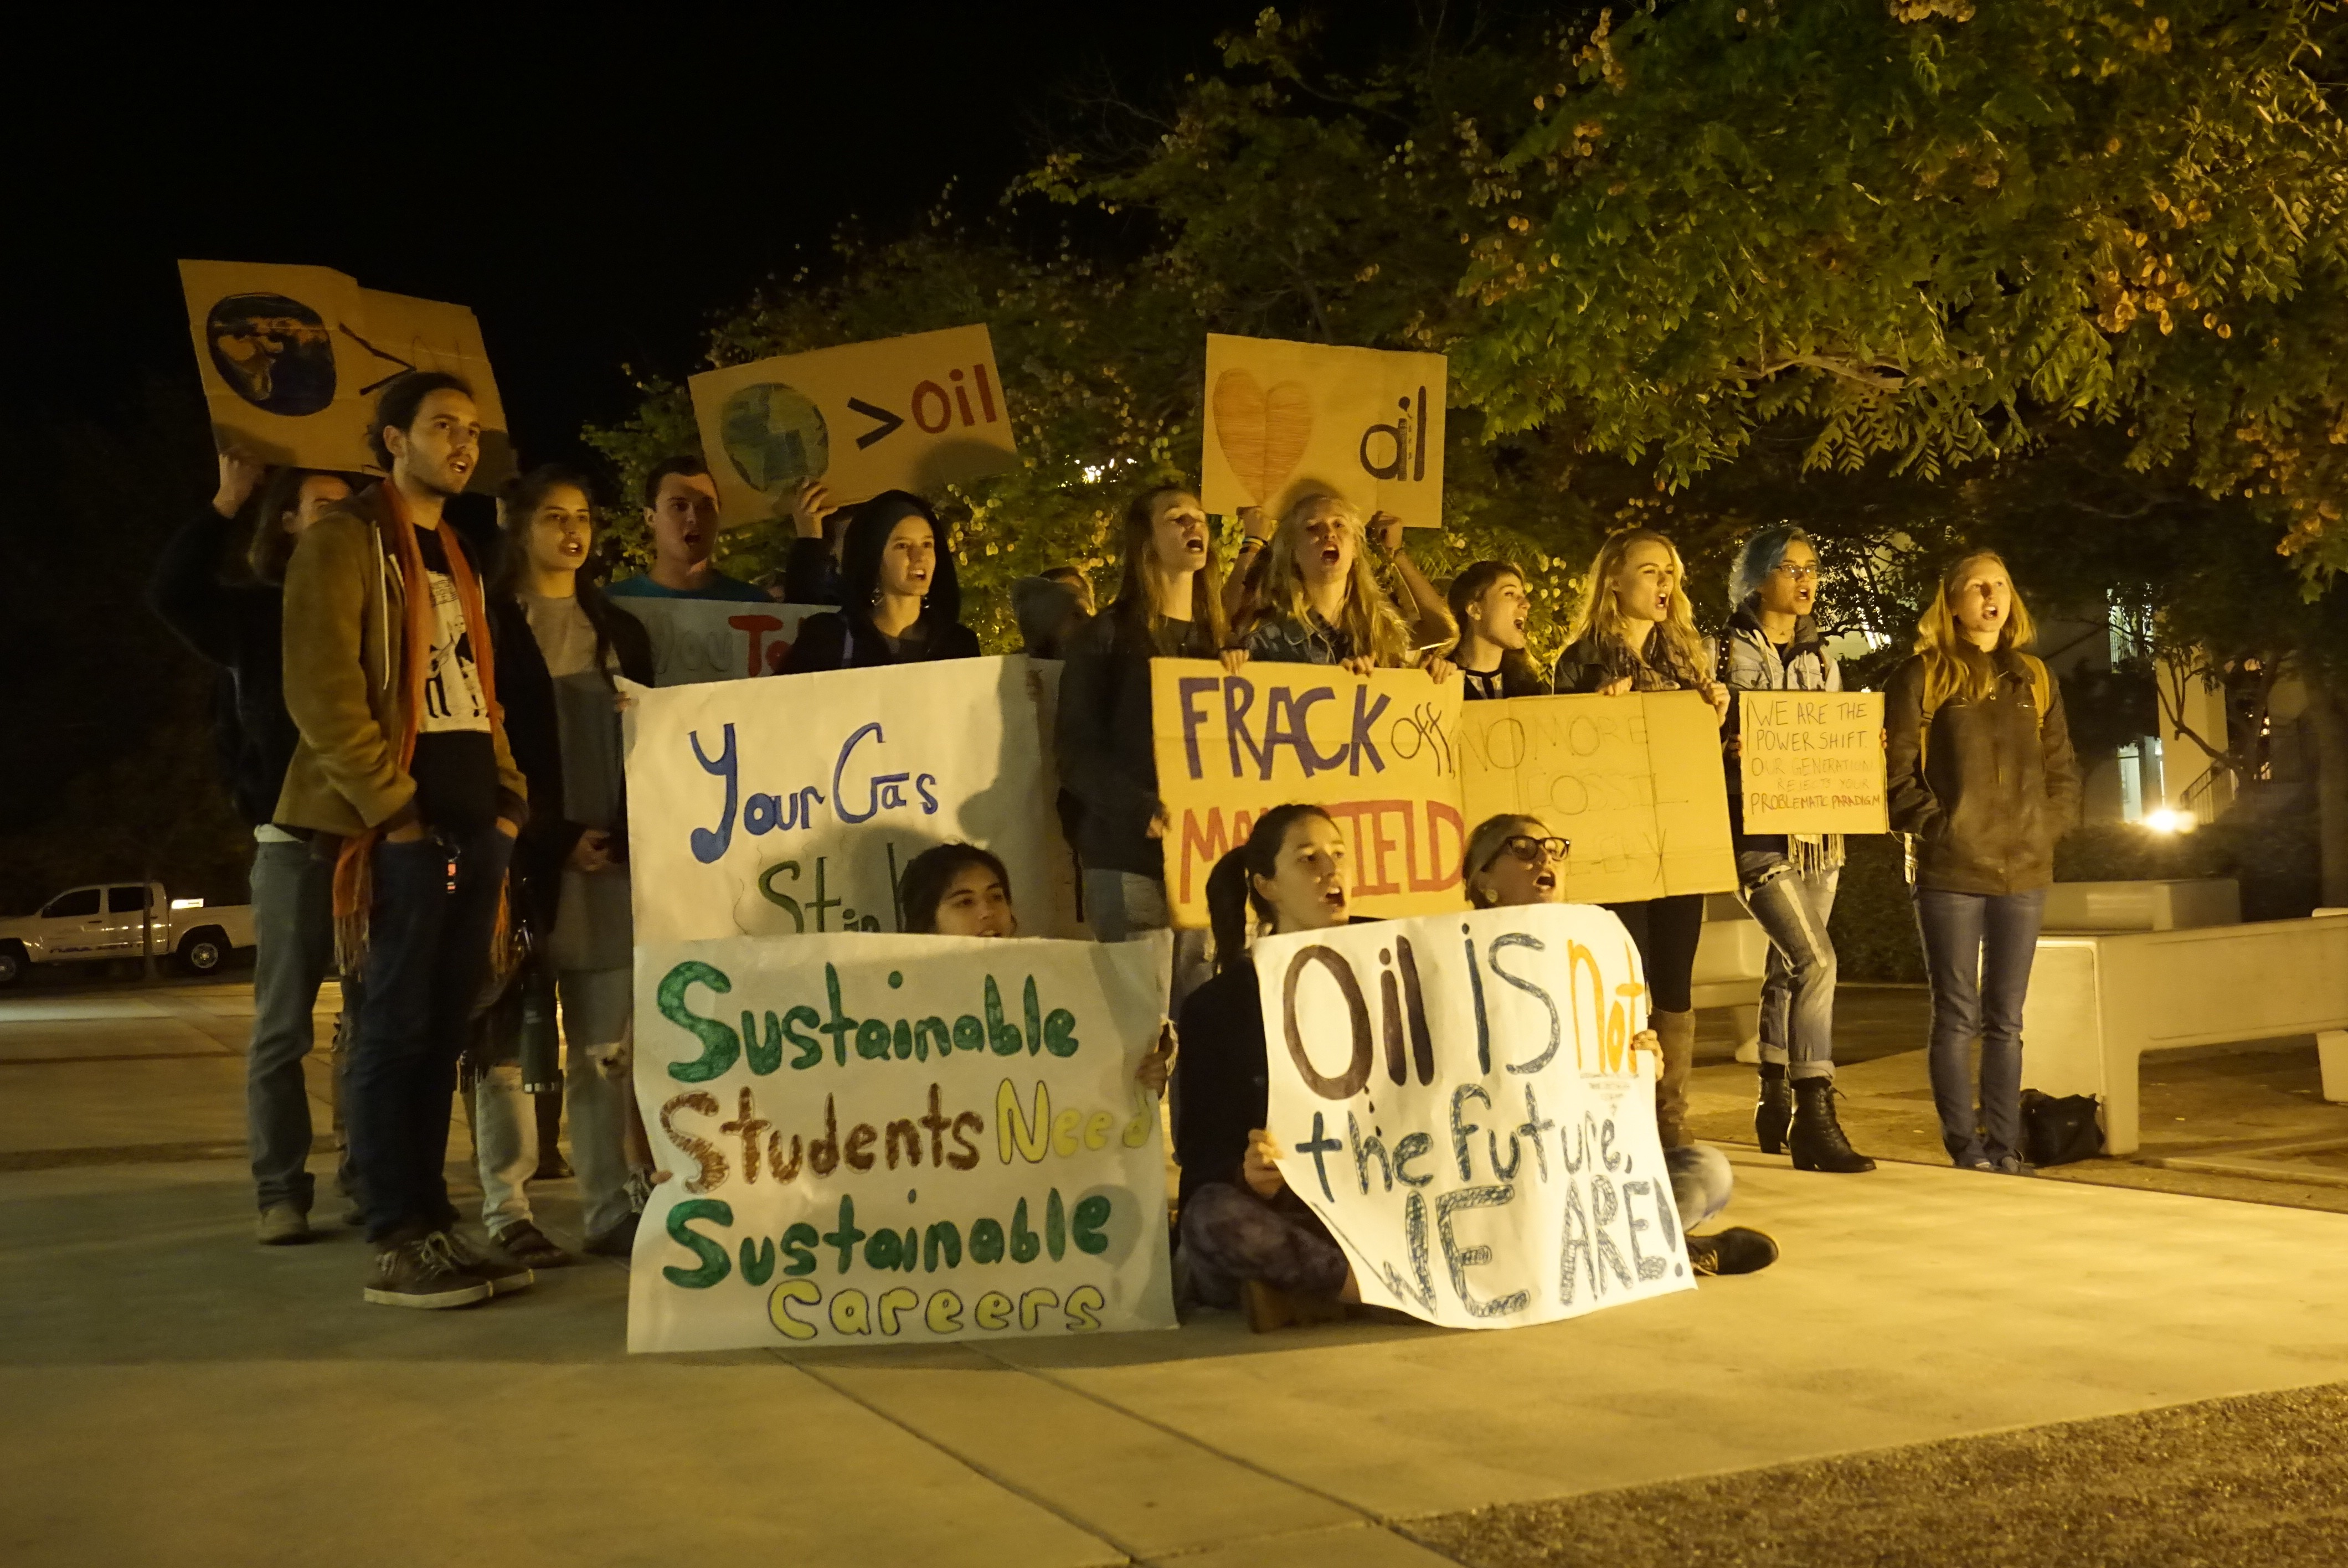 A Student Organizer's Reflection on the Mansfield Oil Protest and Sustainability on Campus